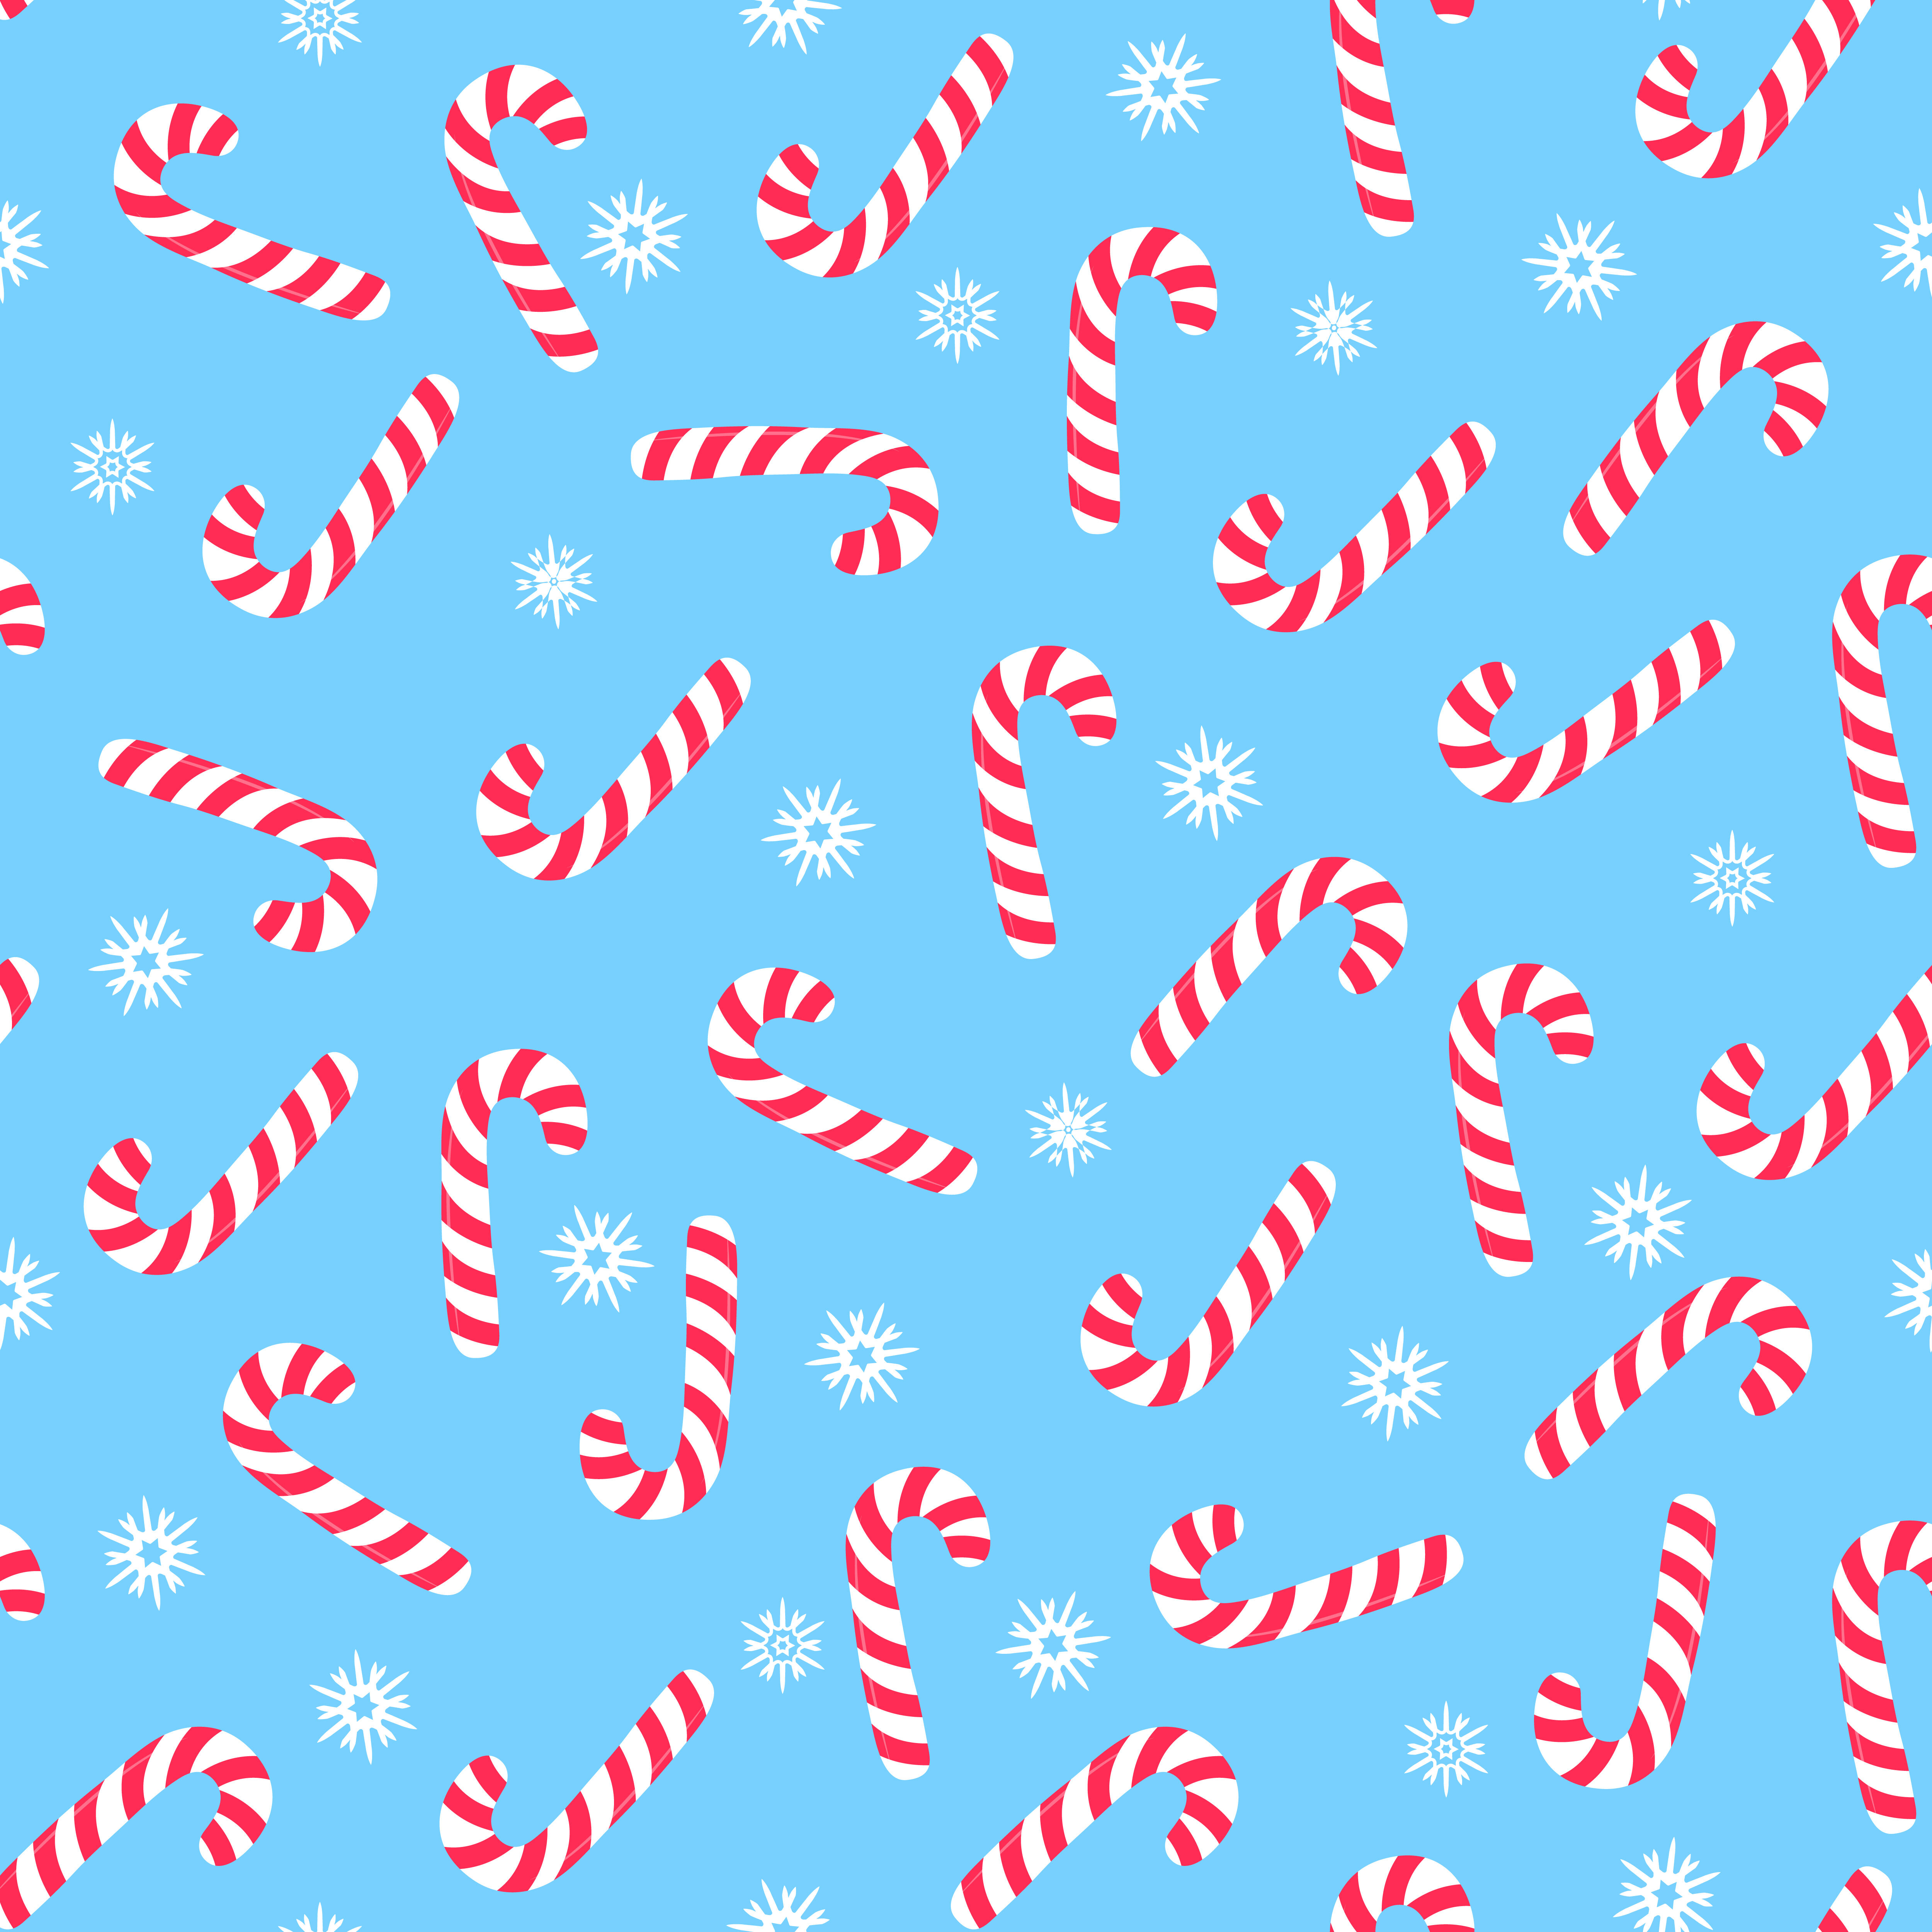 Christmas Candy Cane Falling Snowflakes New Year Seamless